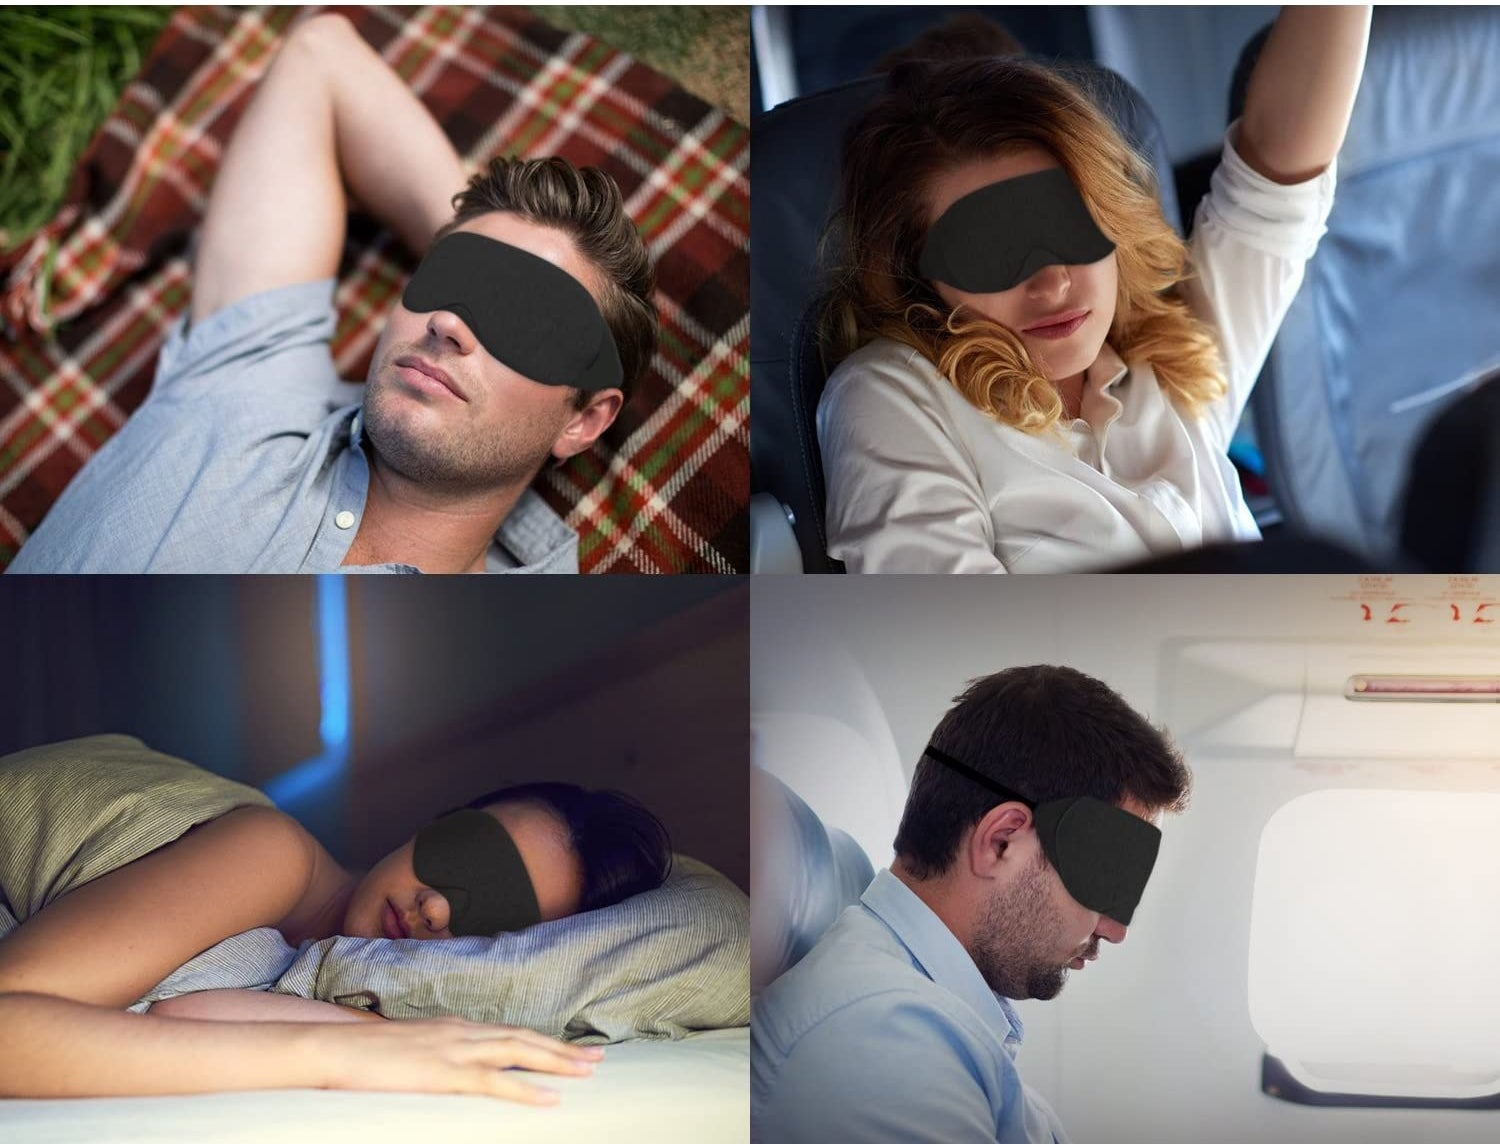 The mask worn by four different people in different sleeping situations